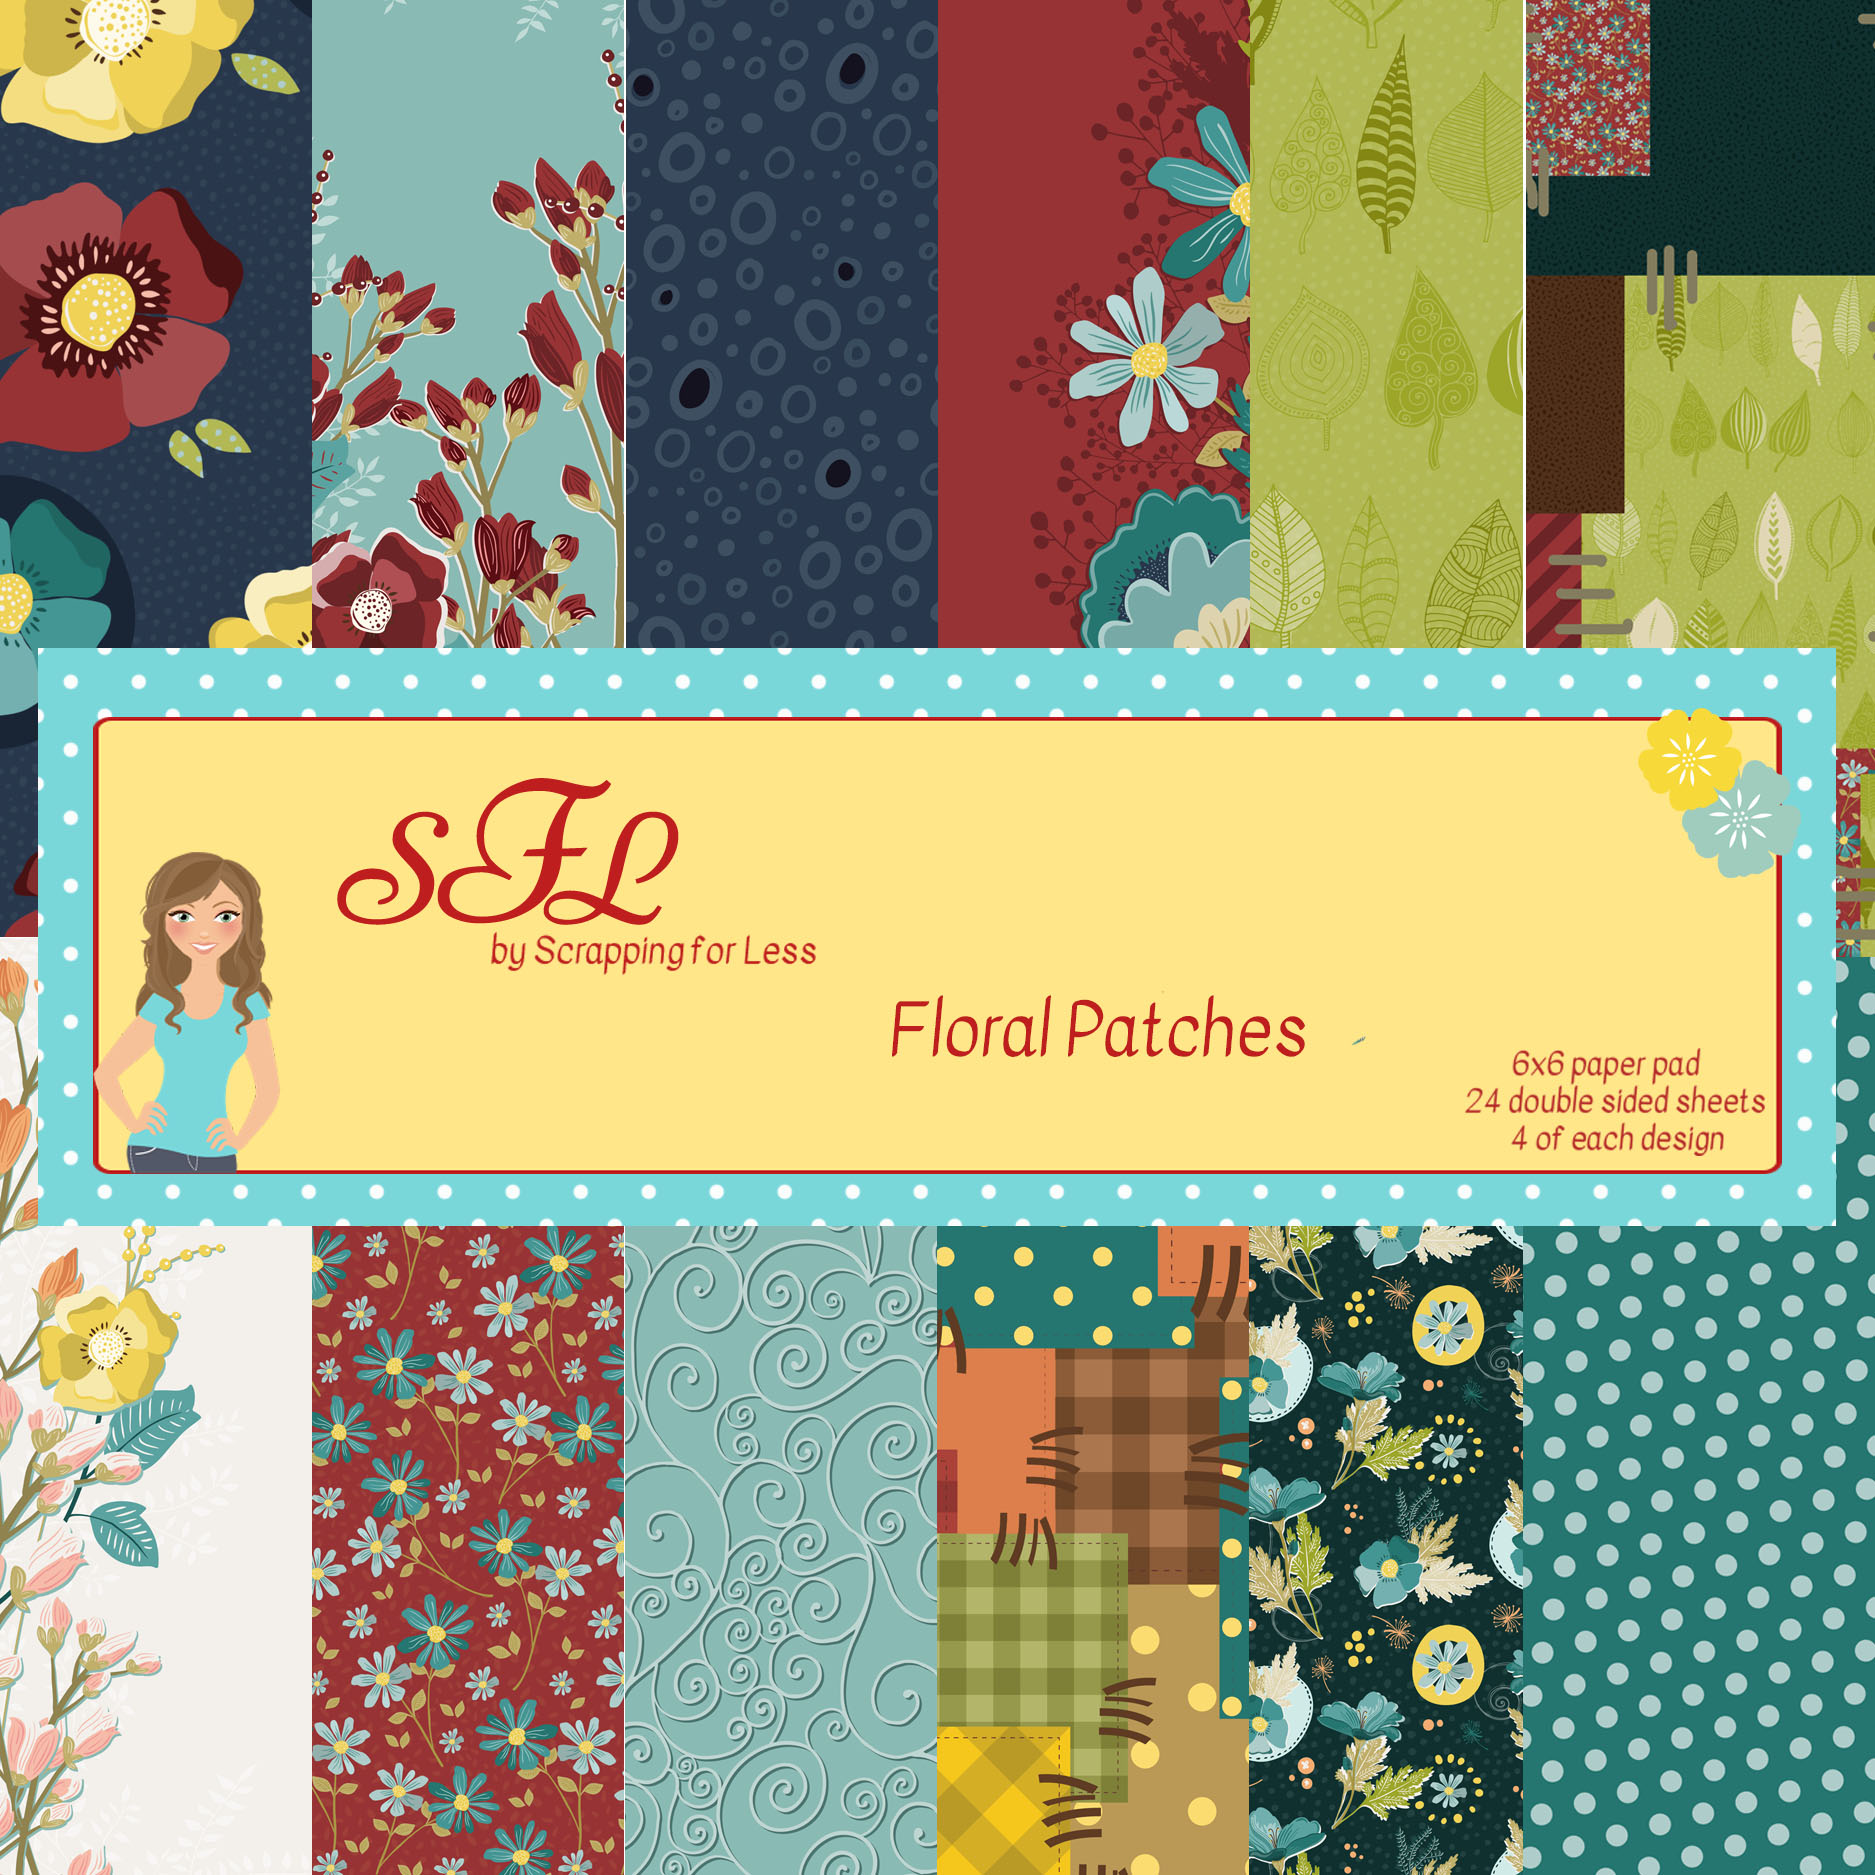 SFL Floral Patches 6x6 Paper Pad